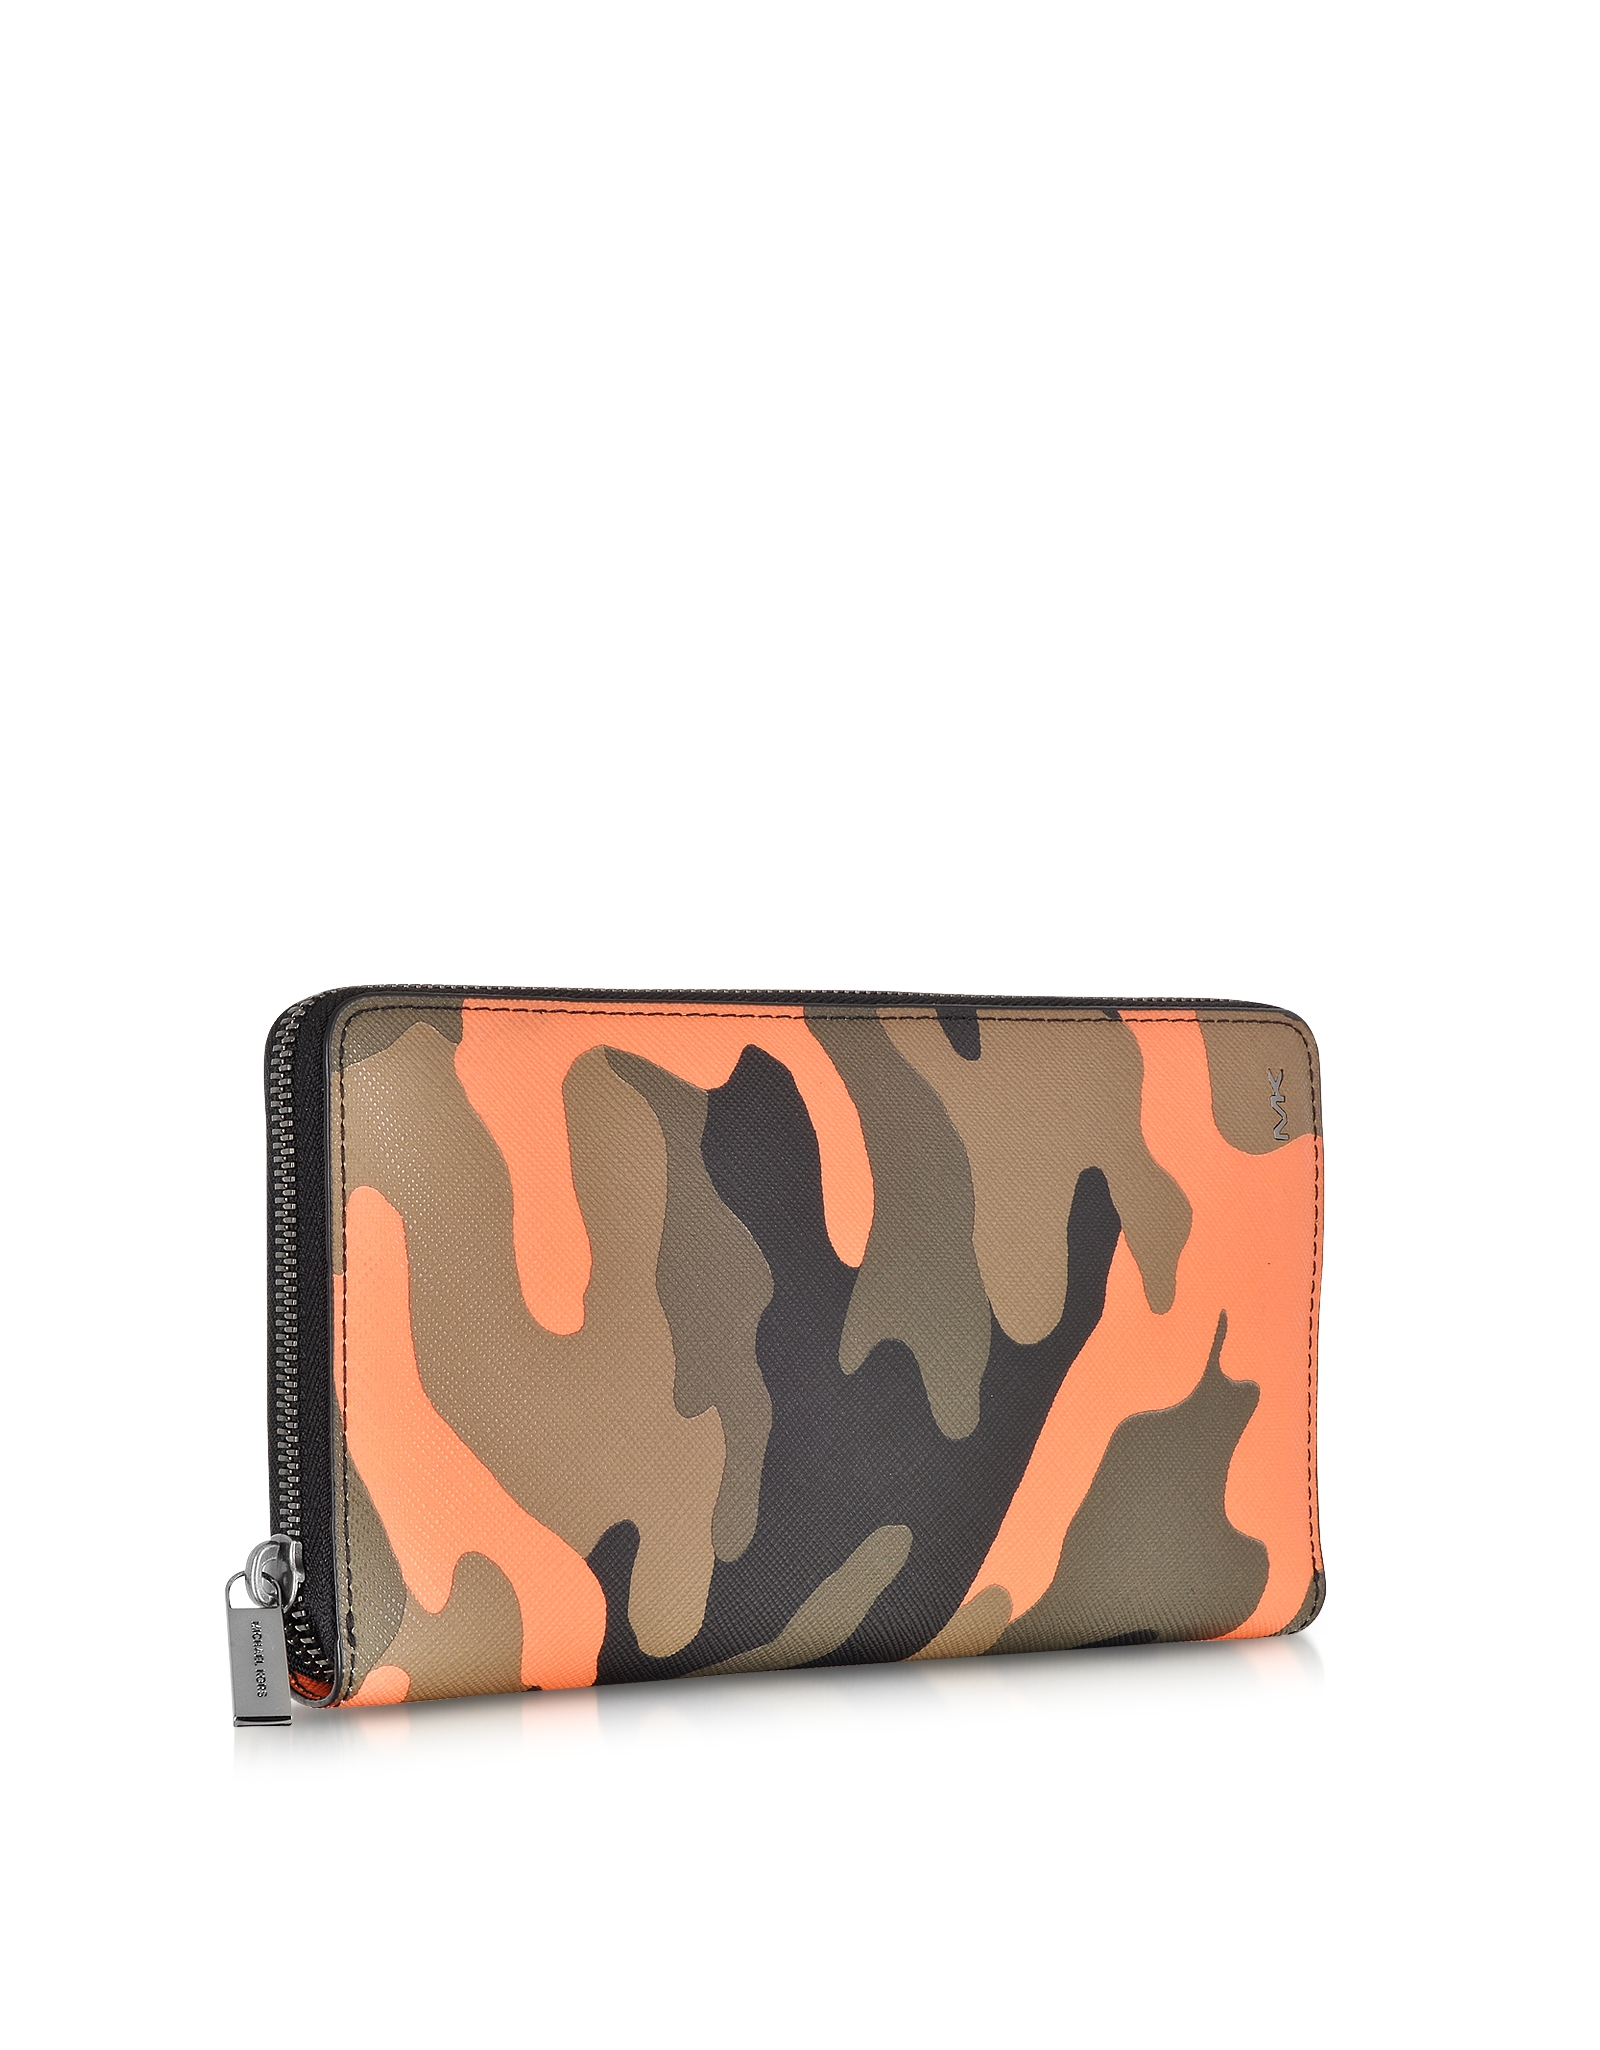 Lyst Michael Kors Jet Set Men S Camouflage Zip Wallet In